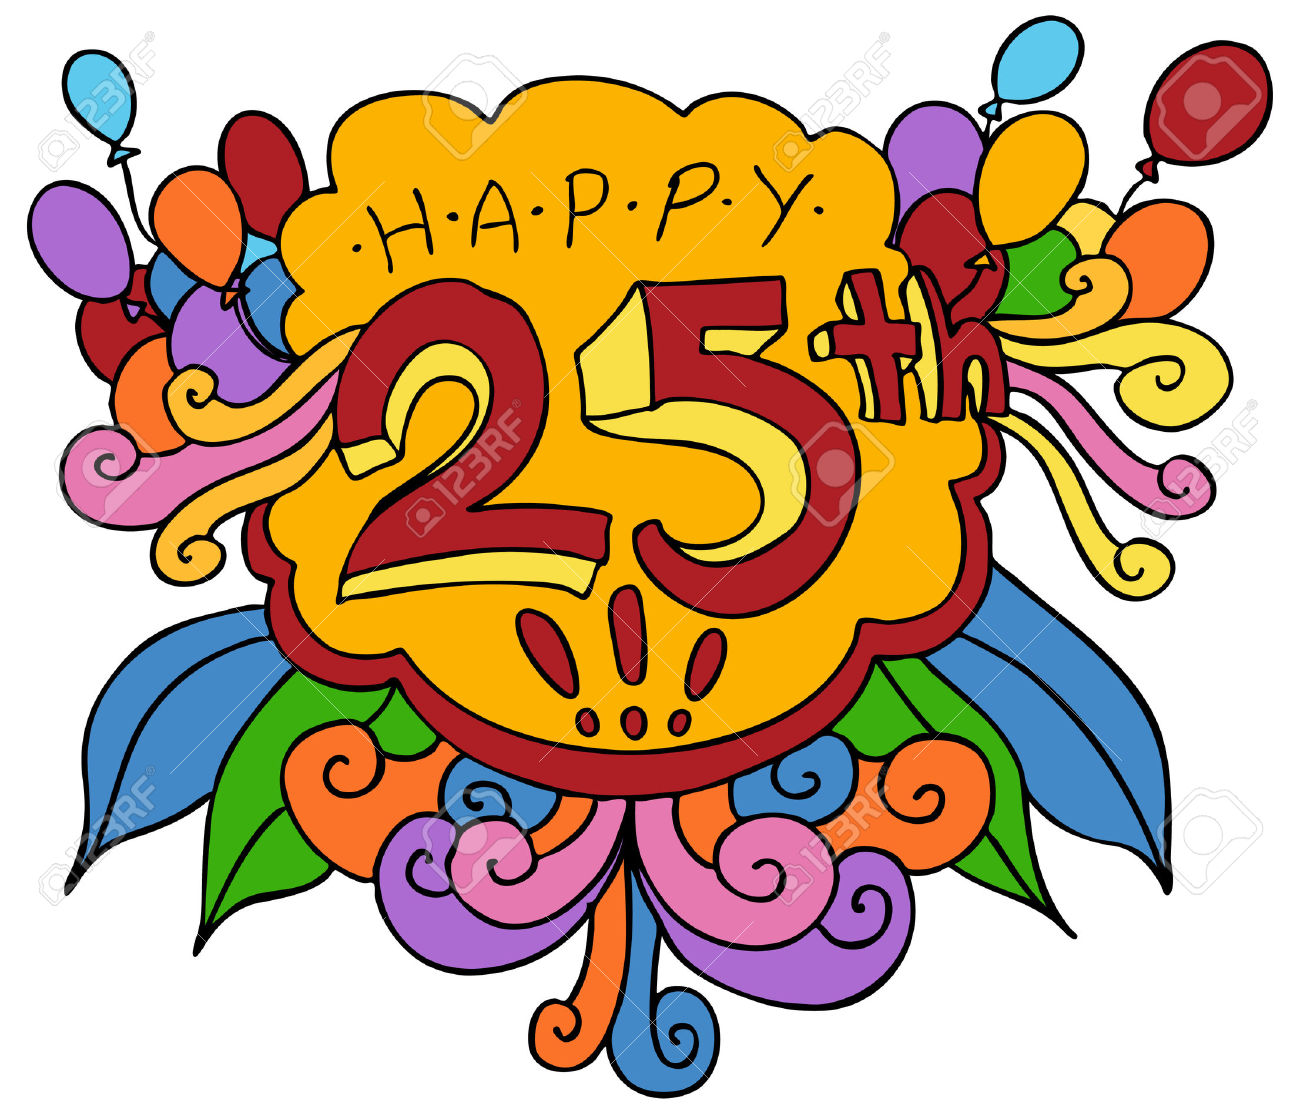 Happy 25th anniversary clipart svg library download Happy 25th anniversary clipart - ClipartFest svg library download